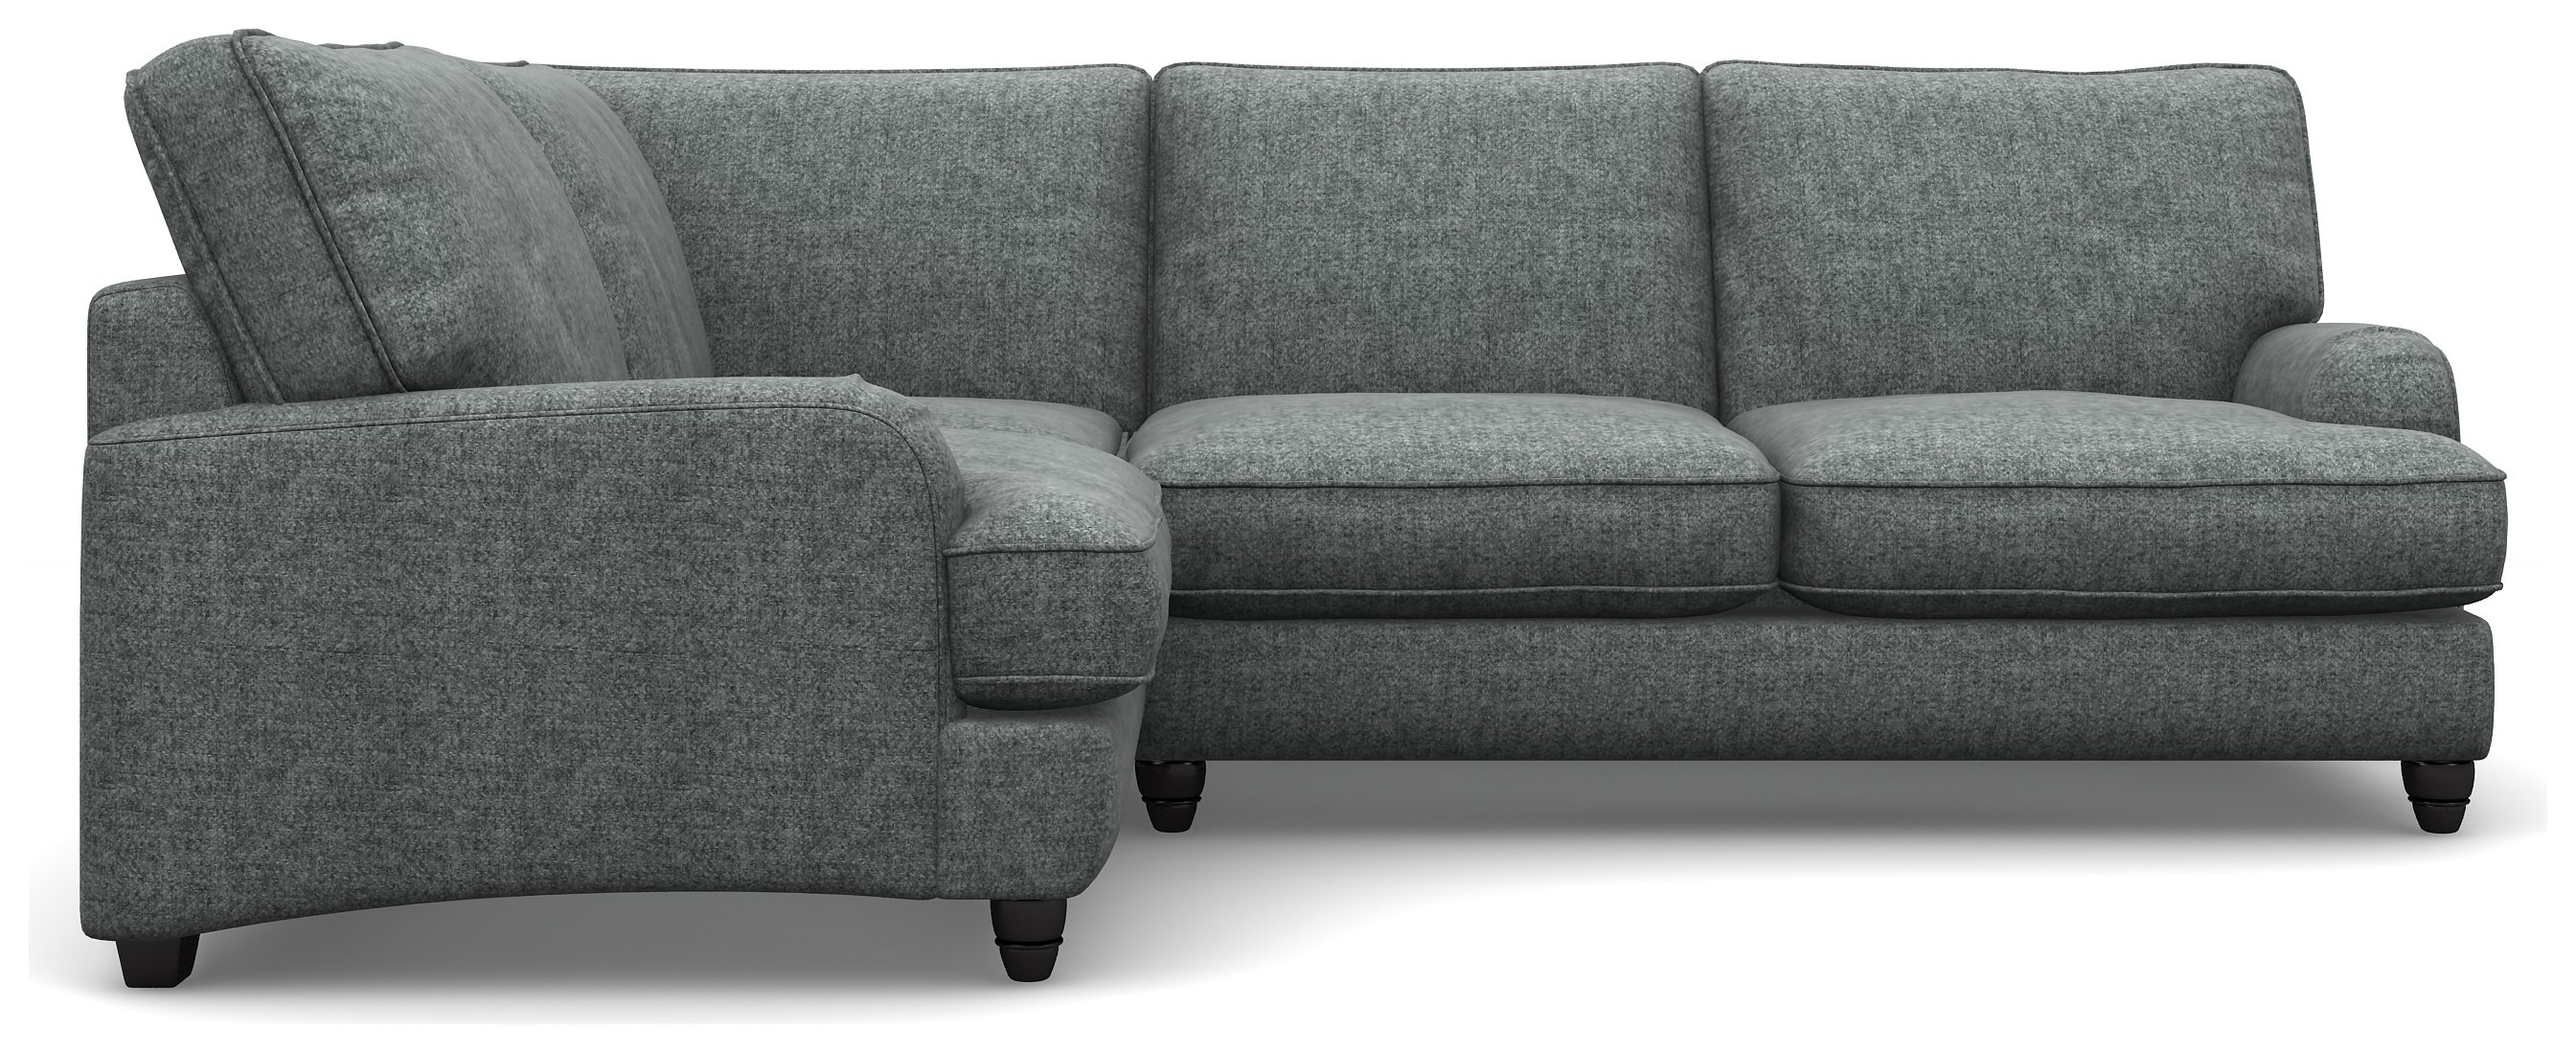 Create your own Heart of House Adeline Tweed Fabric Left Corner Sofa - Grey.